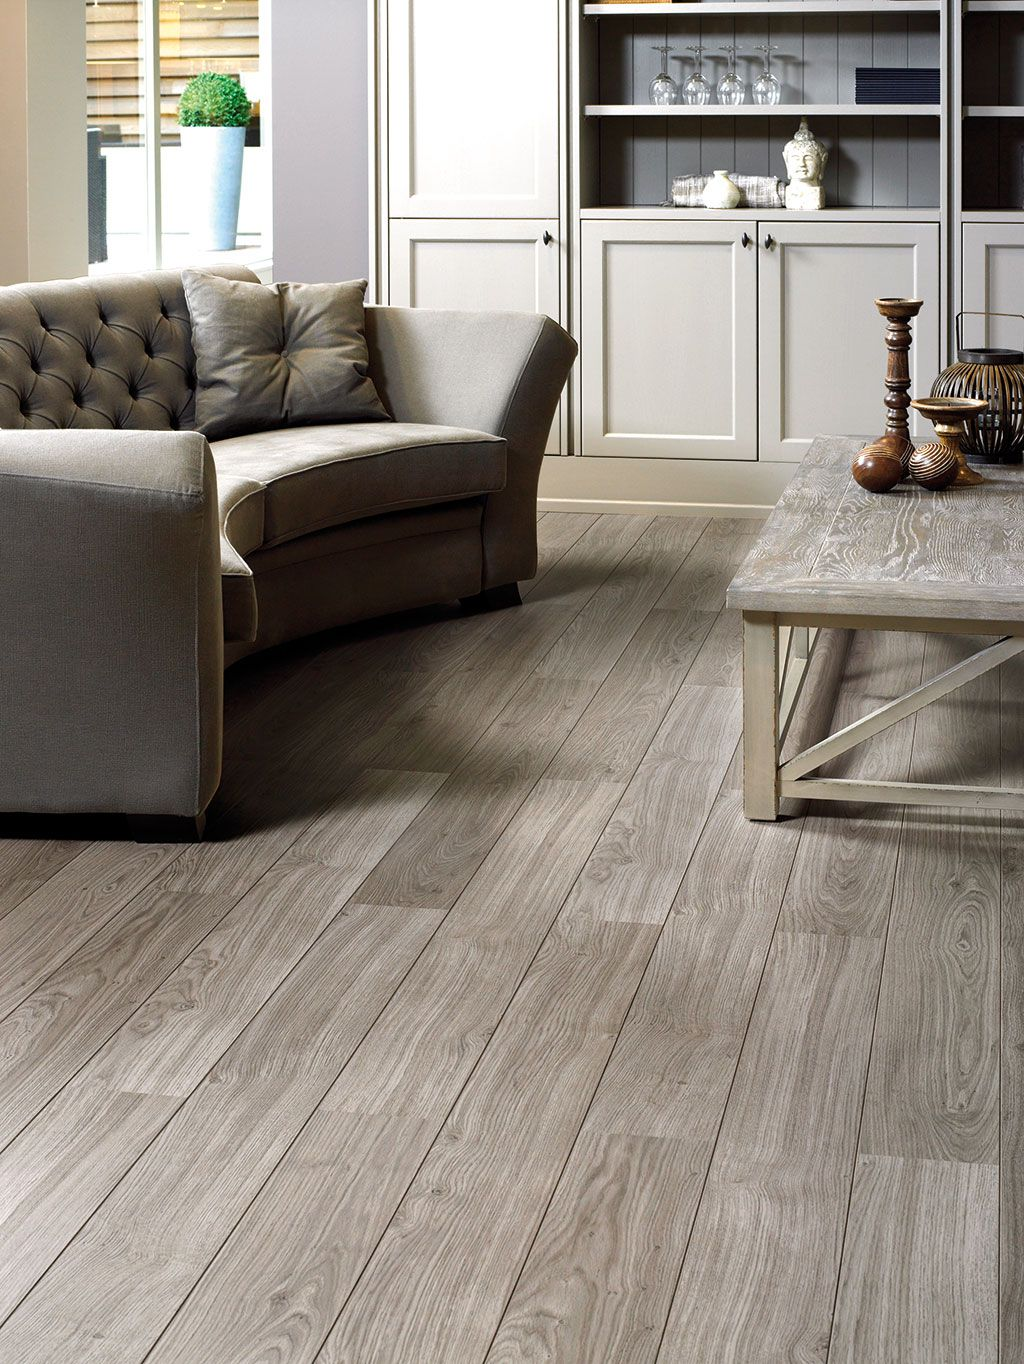 Related Image For The Home Dark Laminate Floors Grey